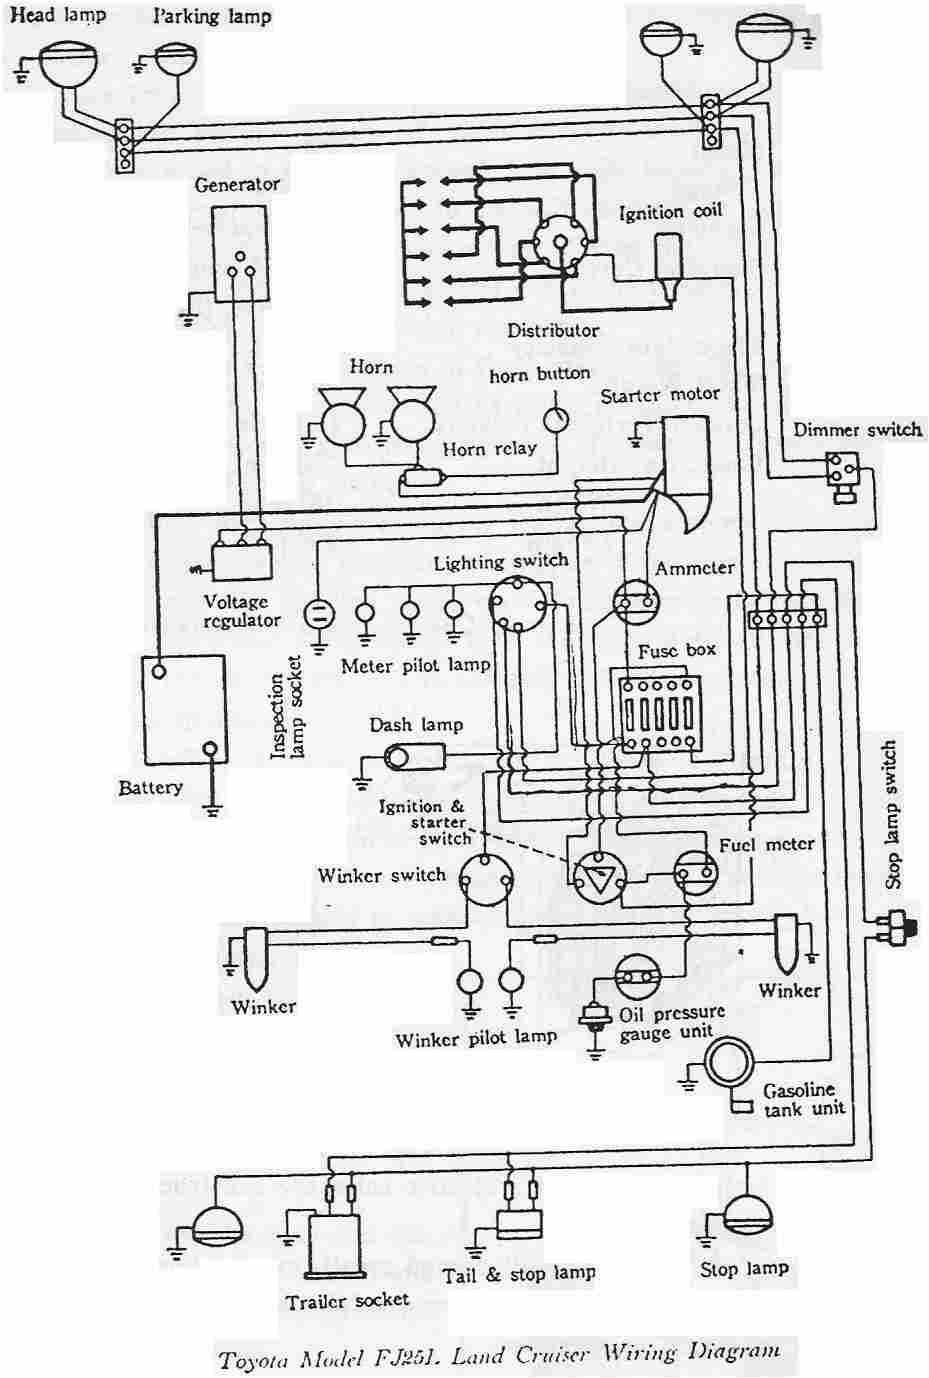 2000 toyota land cruiser wiring diagram 1979 toyota land cruiser wiring diagram toyota land cruiser fj25 electrical wiring diagram | all ... #6